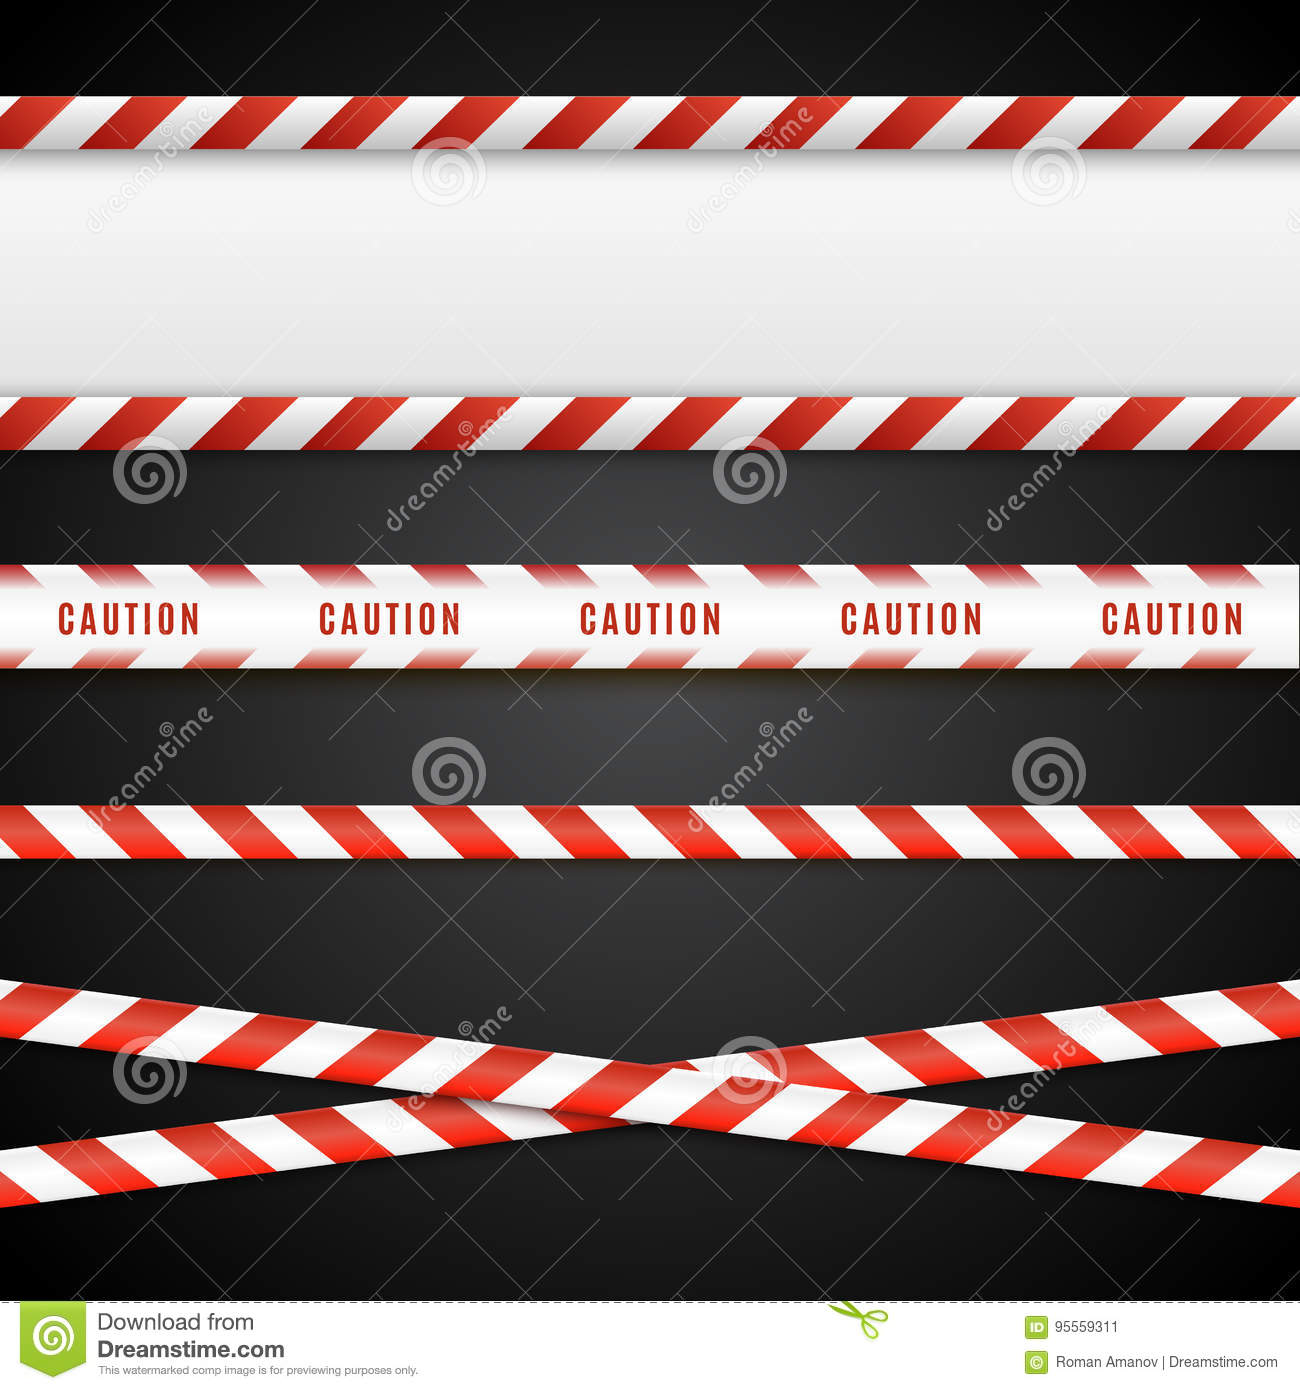 Red and white danger tapes. Caution lines isolated. Vector illustration